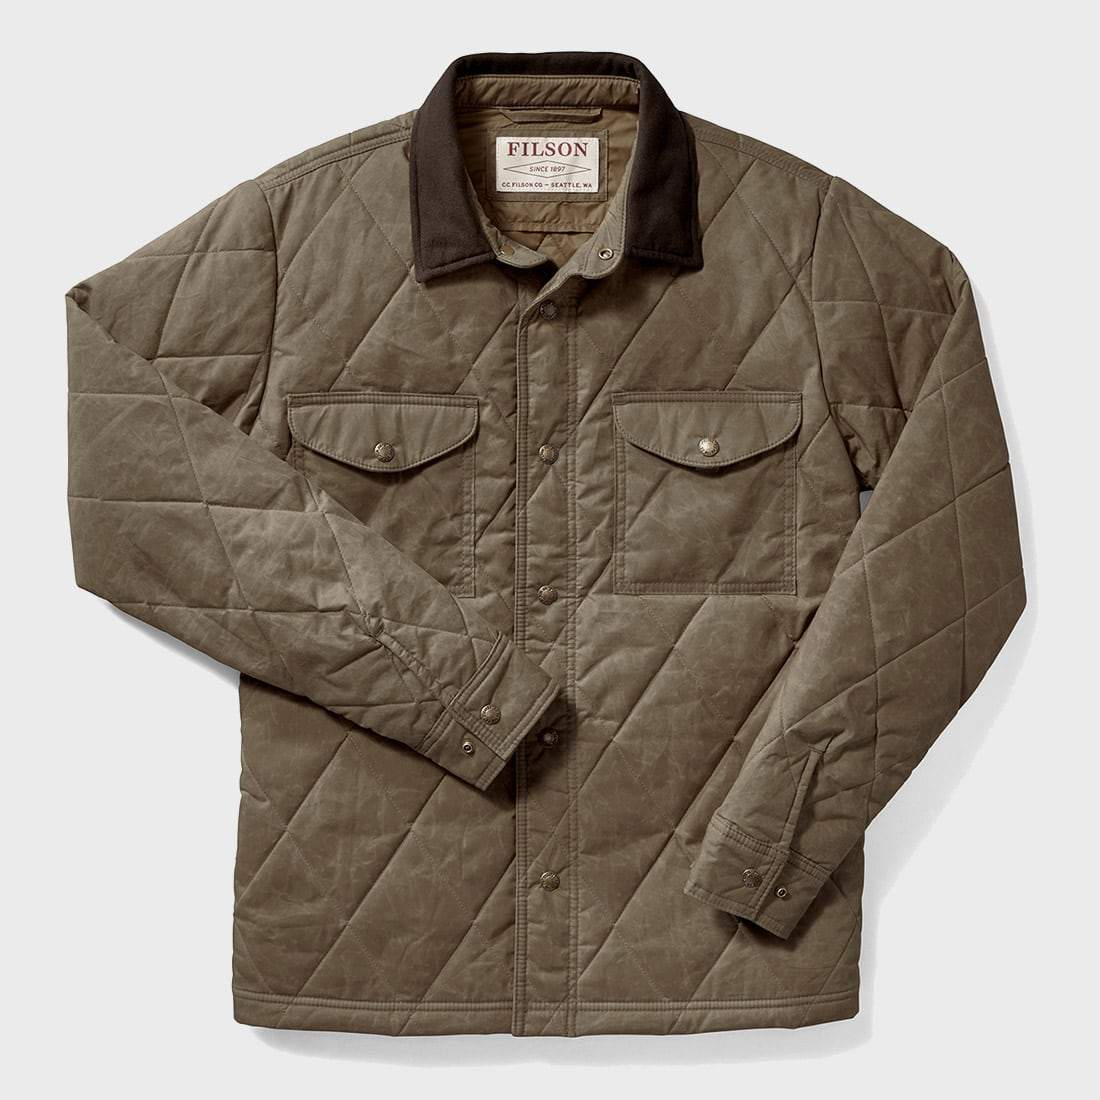 Filson Hyder Quilted Jac-Shirt Tan